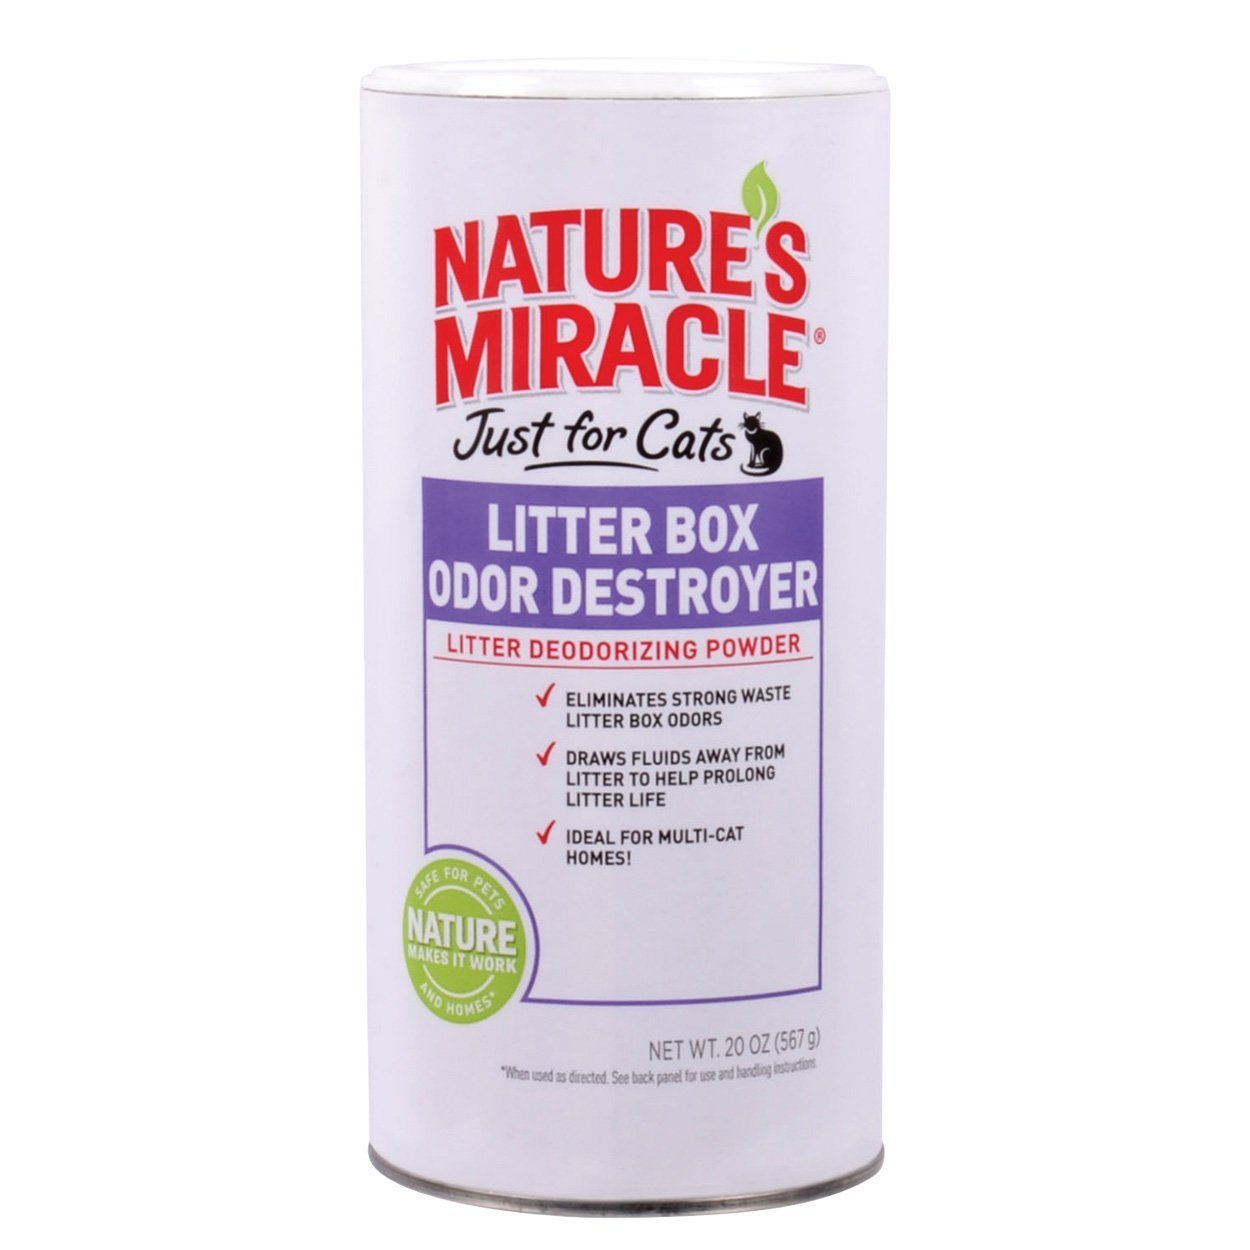 Nature's Miracle Just for Cats Litter Box Odor Destroyer Powder - 20 oz (Pack of 4) by Nature's Miracle